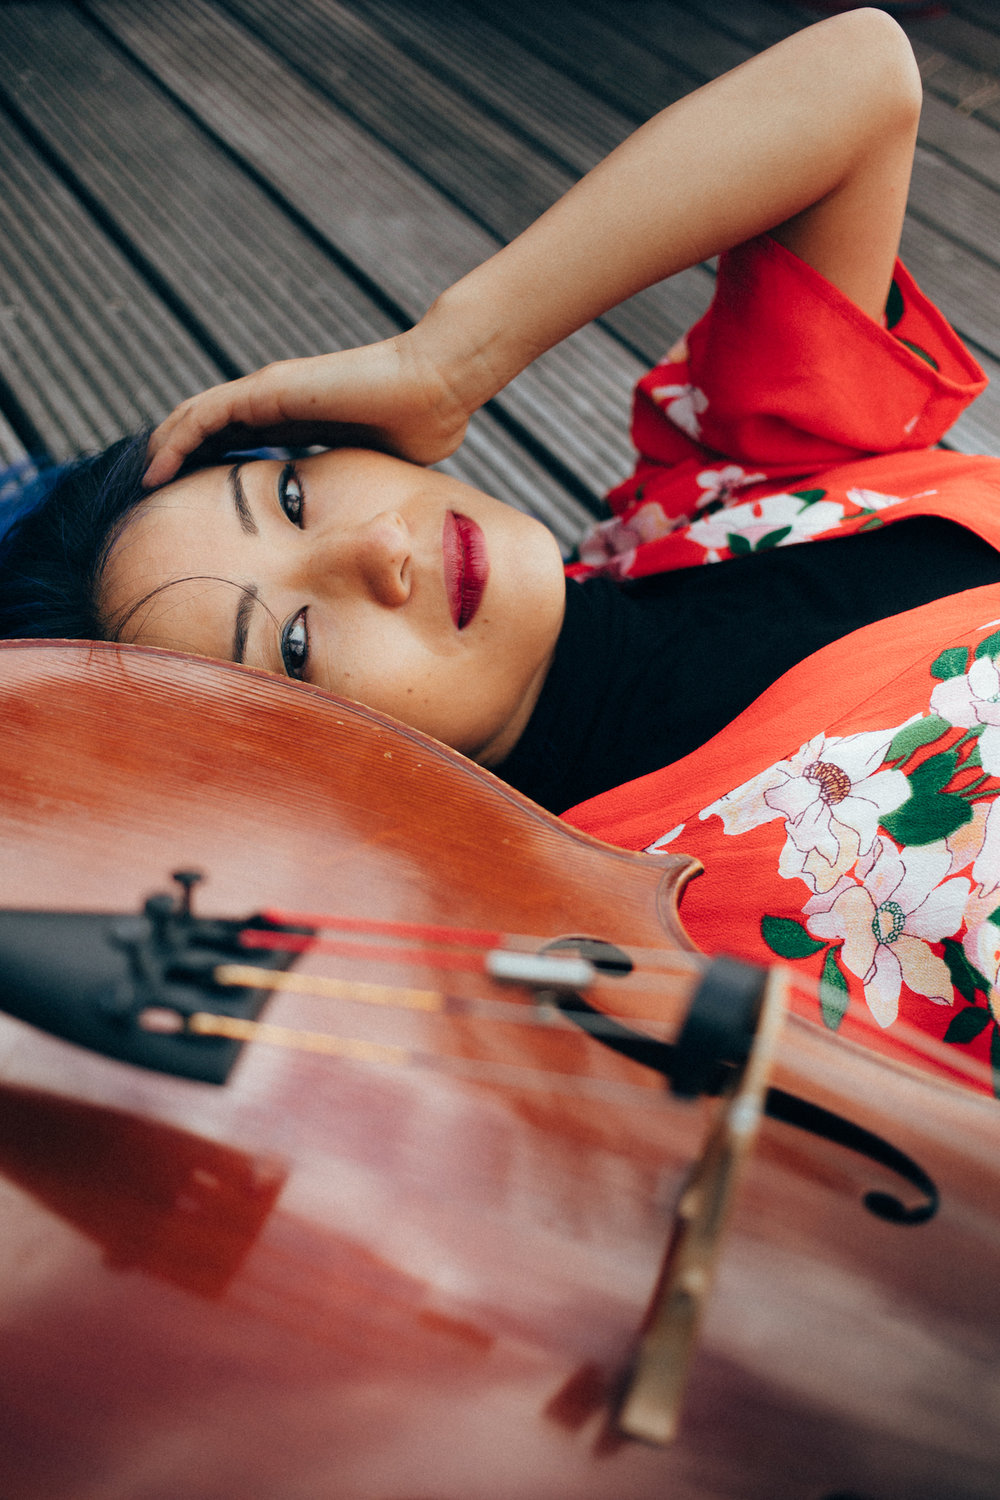 The-Wong-Janice-session-cellist-music-producer-Amsterdam-photo-by-Hellen-Koroleva-instagram-imaginationinyou.jpg